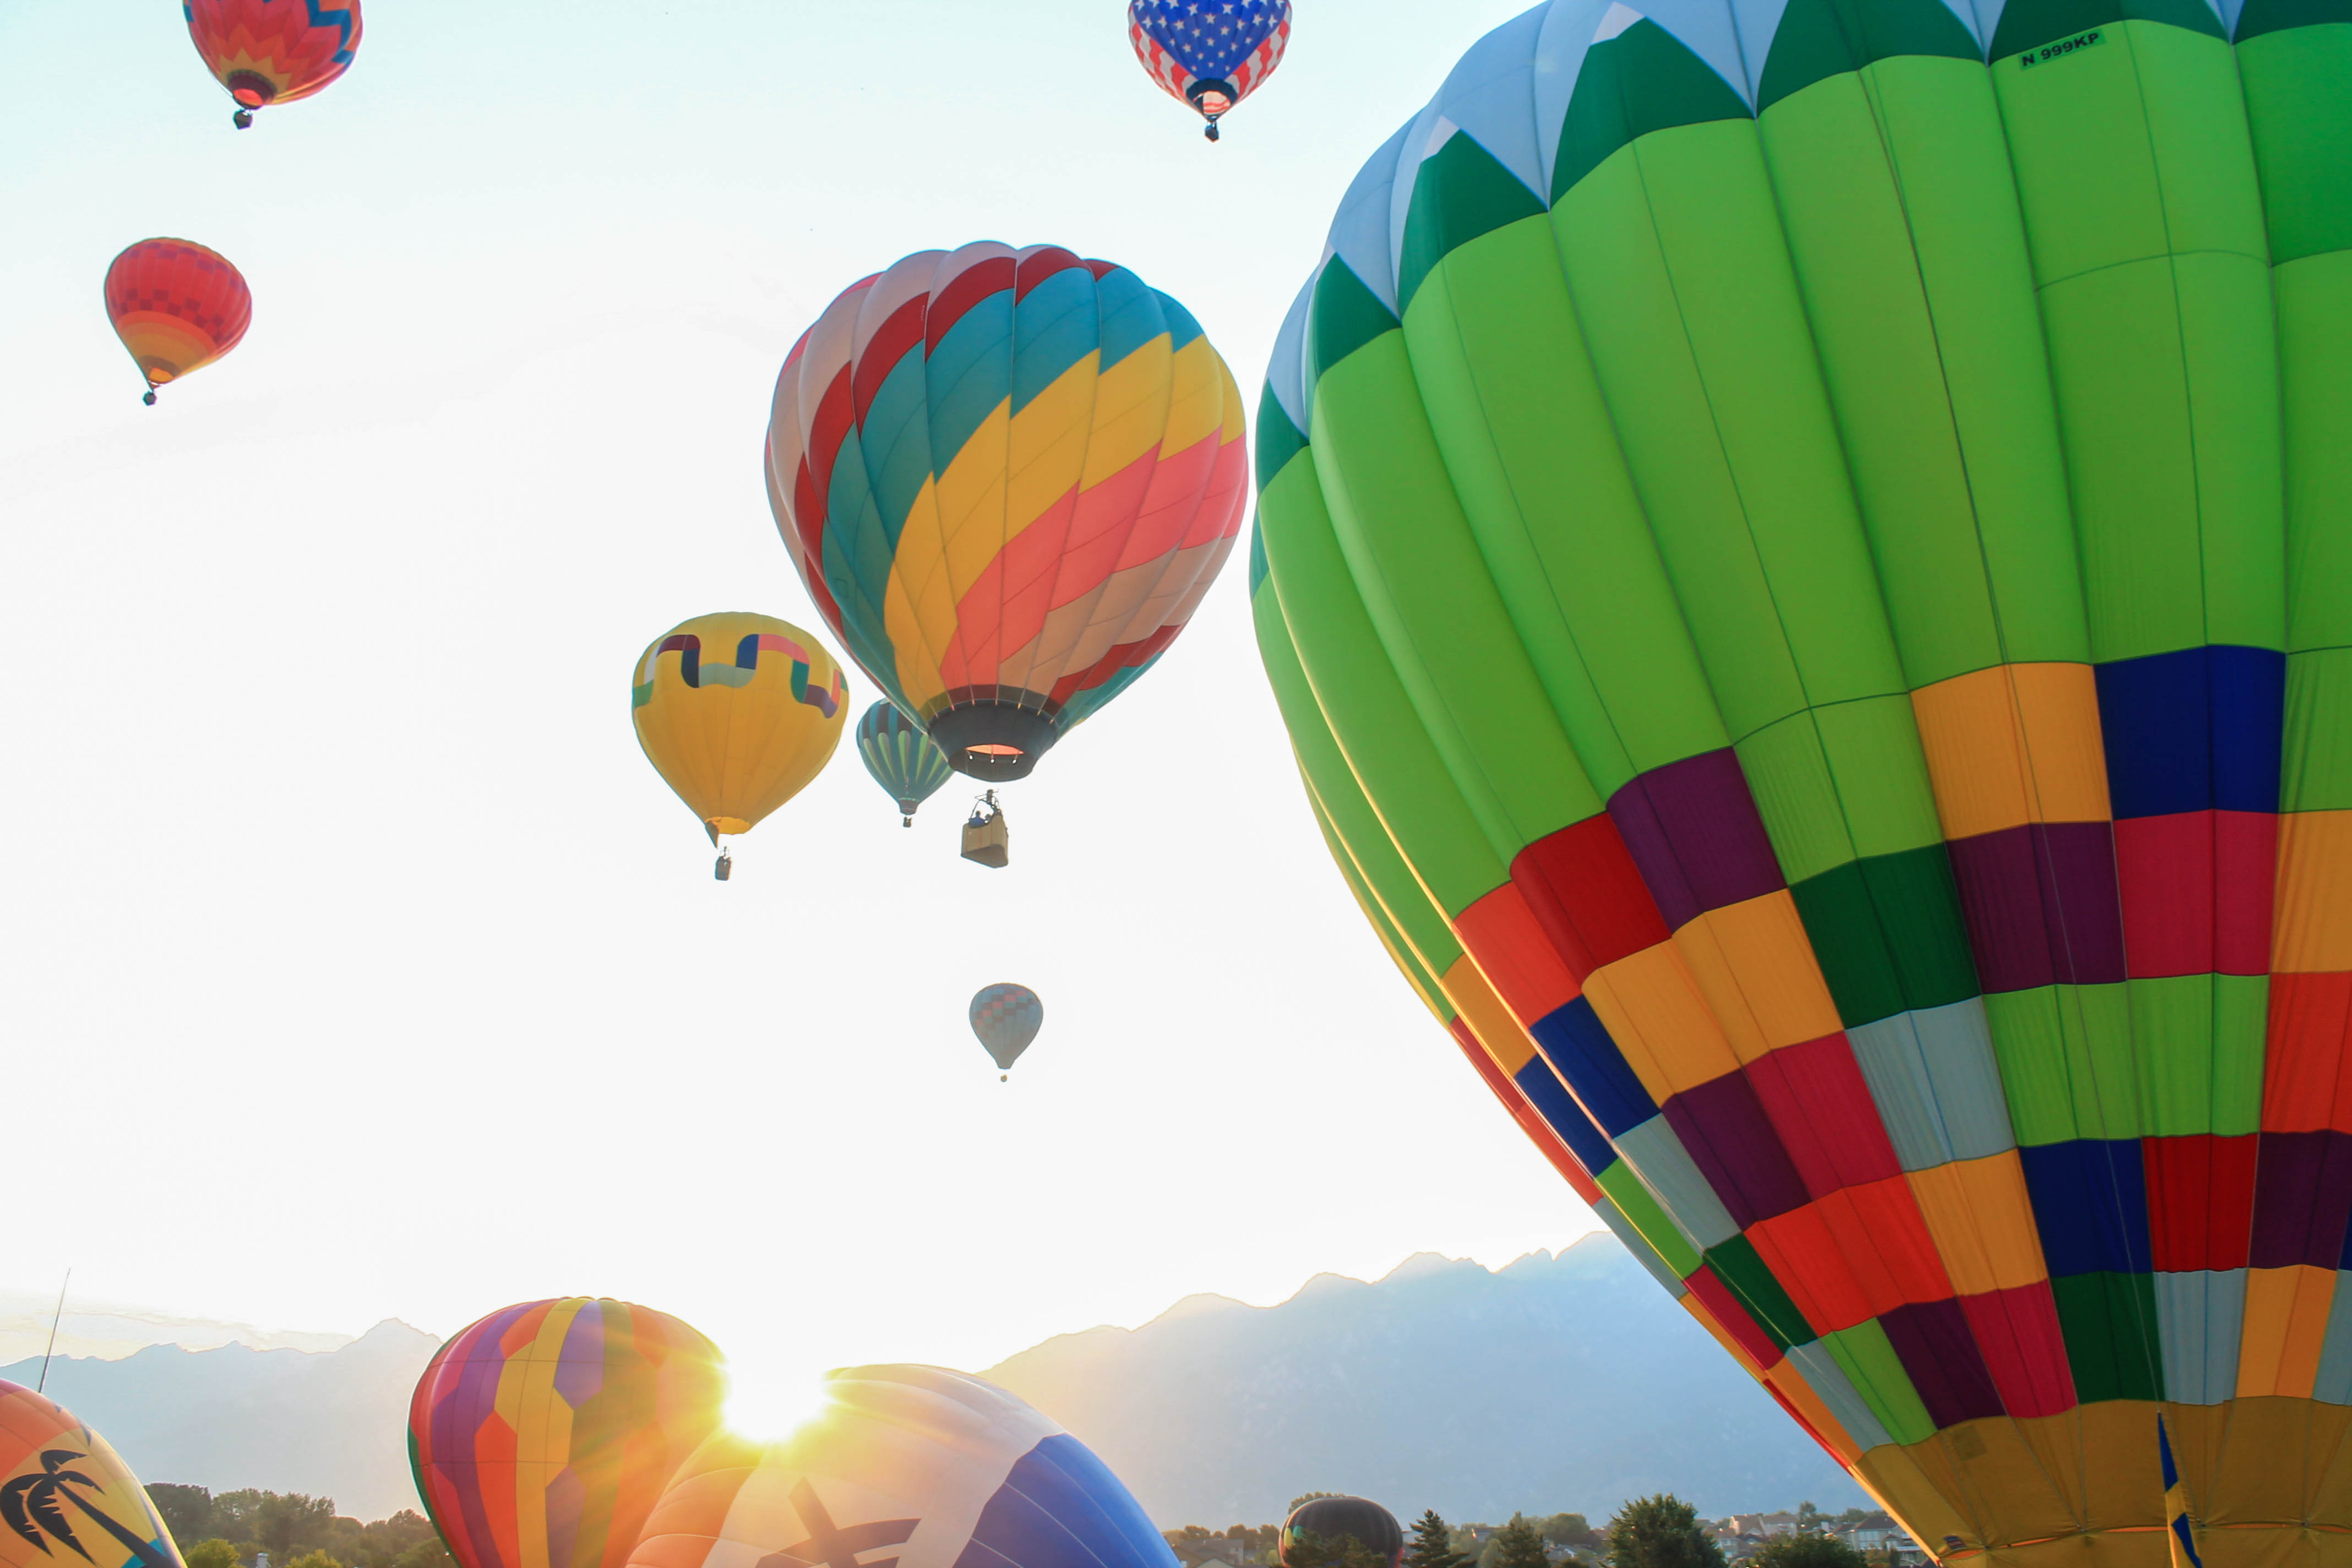 Balloons, balloons, helium, flying, wind, colors, hot air balloons, sky